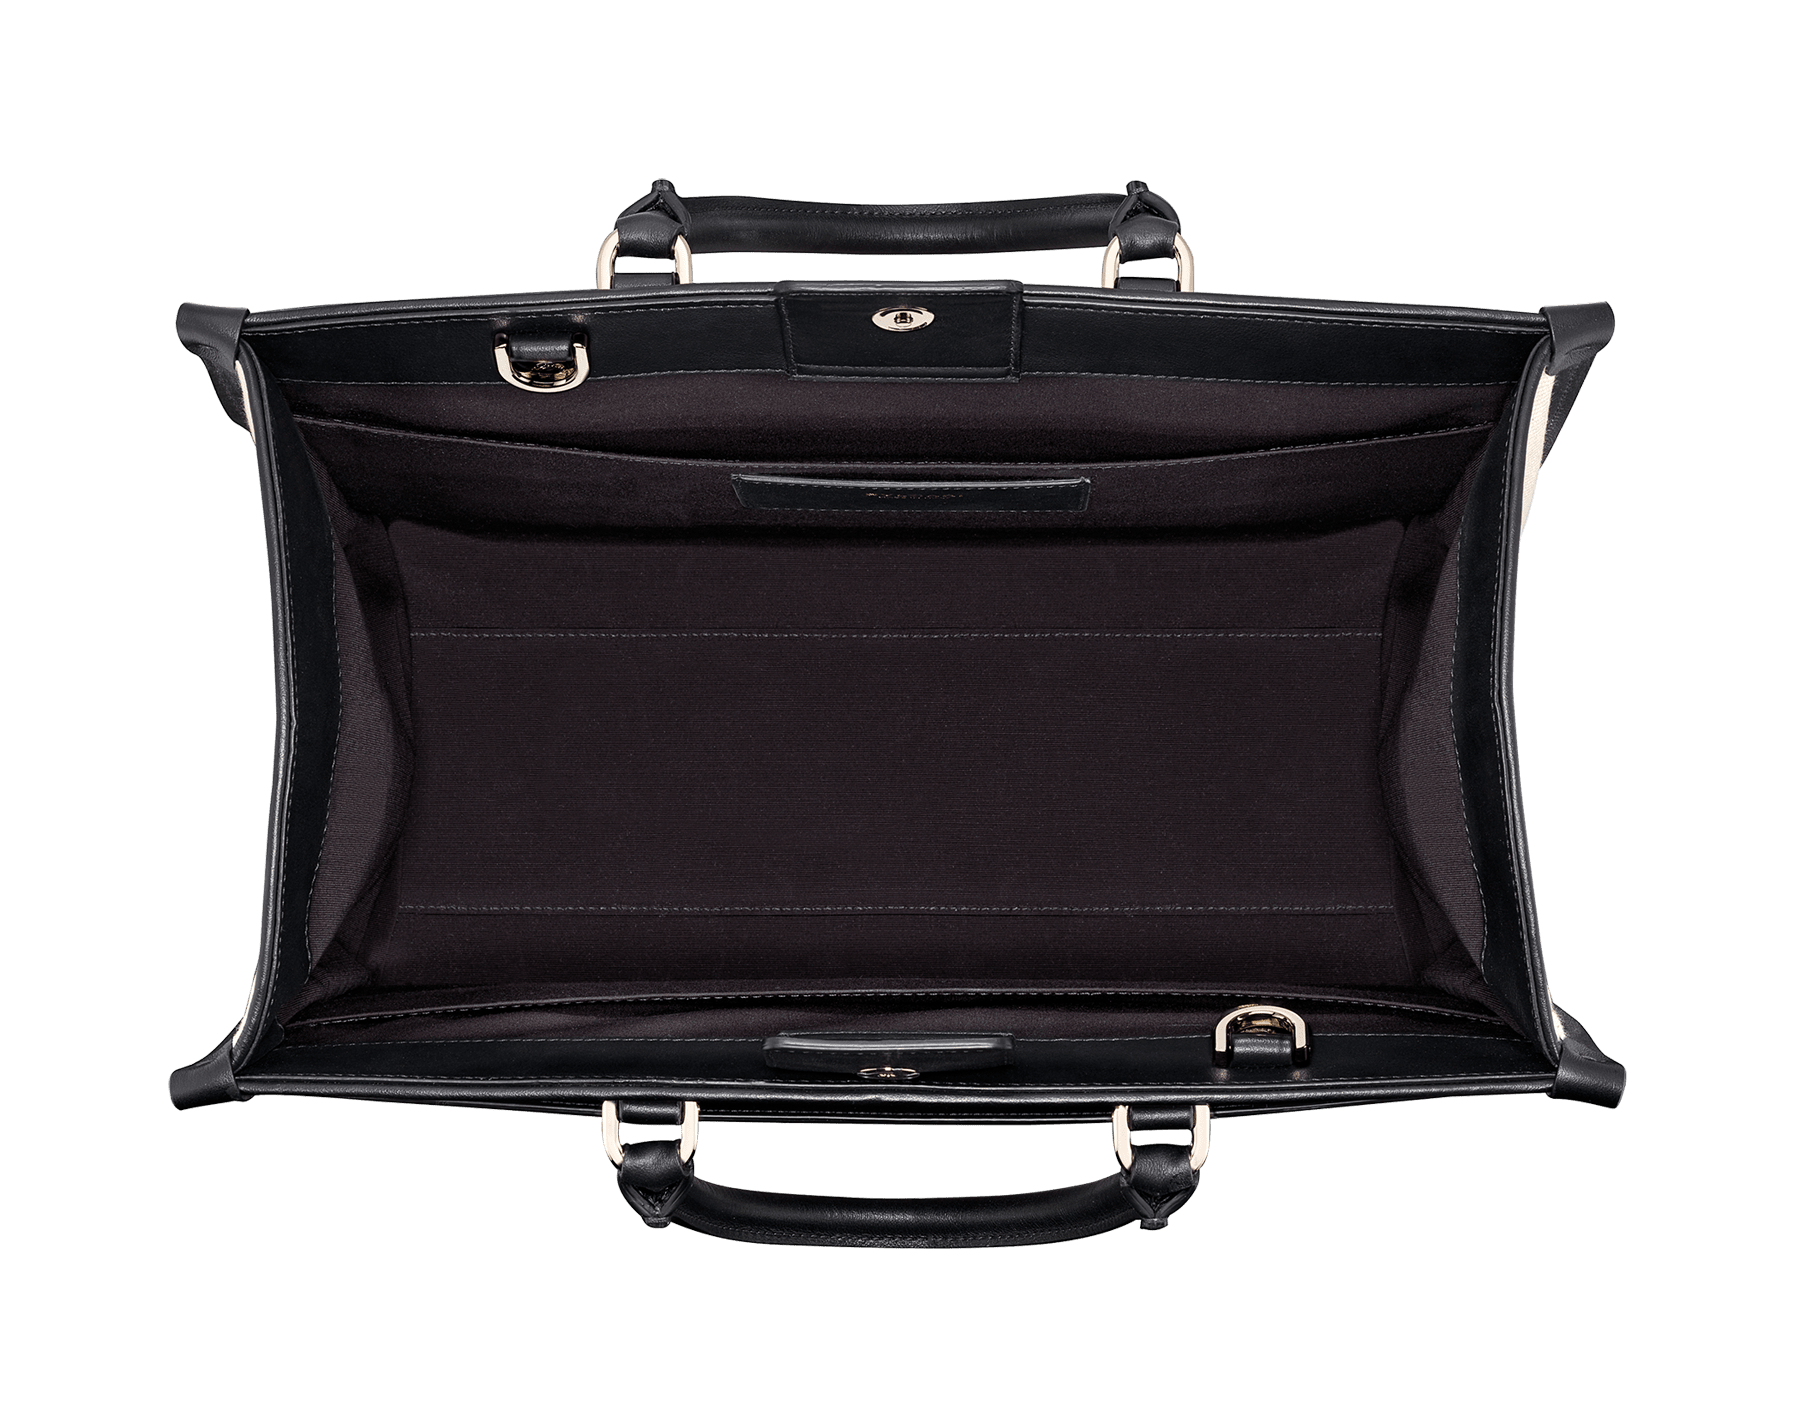 """""""Bvlgari Logo"""" large tote bag in black calf leather, with black grosgrain inner lining. Bvlgari logo featuring dark ruthenium-plated brass chain inserts on the black calf leather. BVL-1160 image 5"""